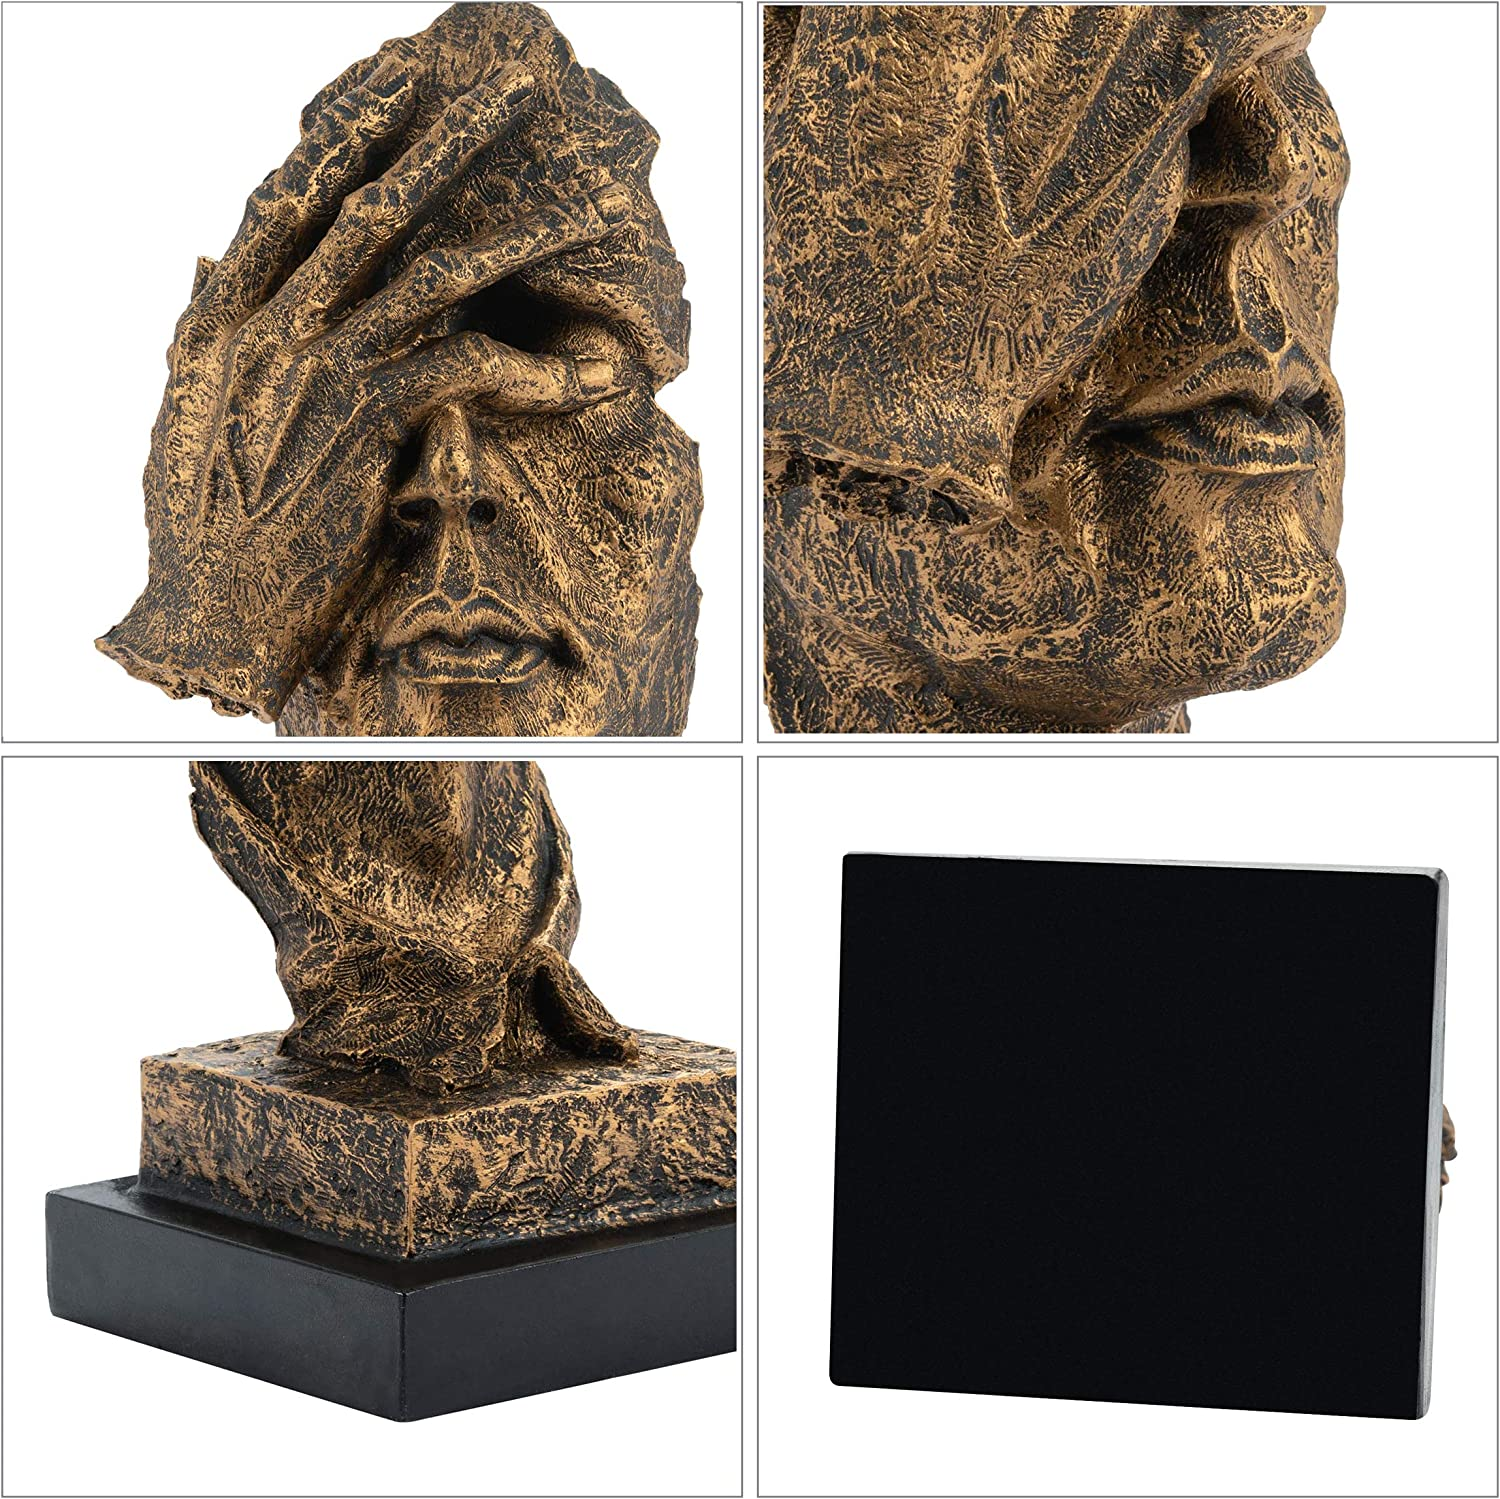 YINASI Abstract and Creative Desk Decorations The Thinker Statue No See Vintage Hand /& Face Statues and Sculptures with Square Base Resin Figurine for Office Home Living Room Desk Decor